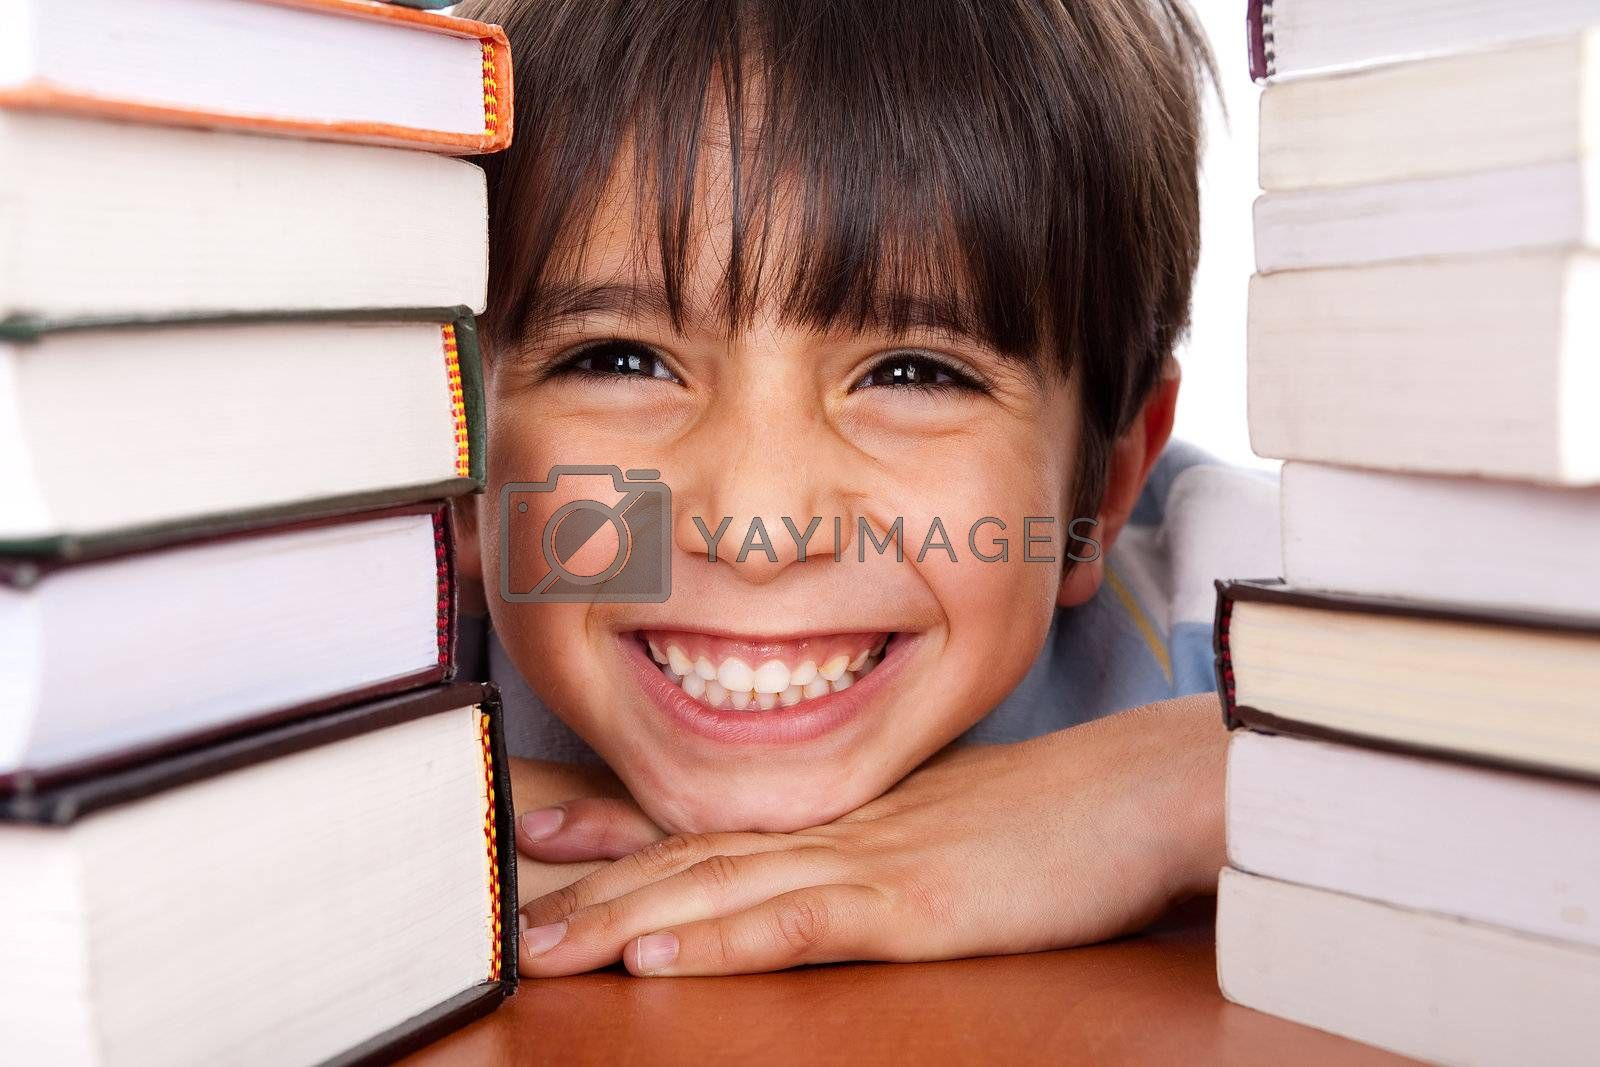 Young boy smiling at camera as he relaxes on table piled up with books